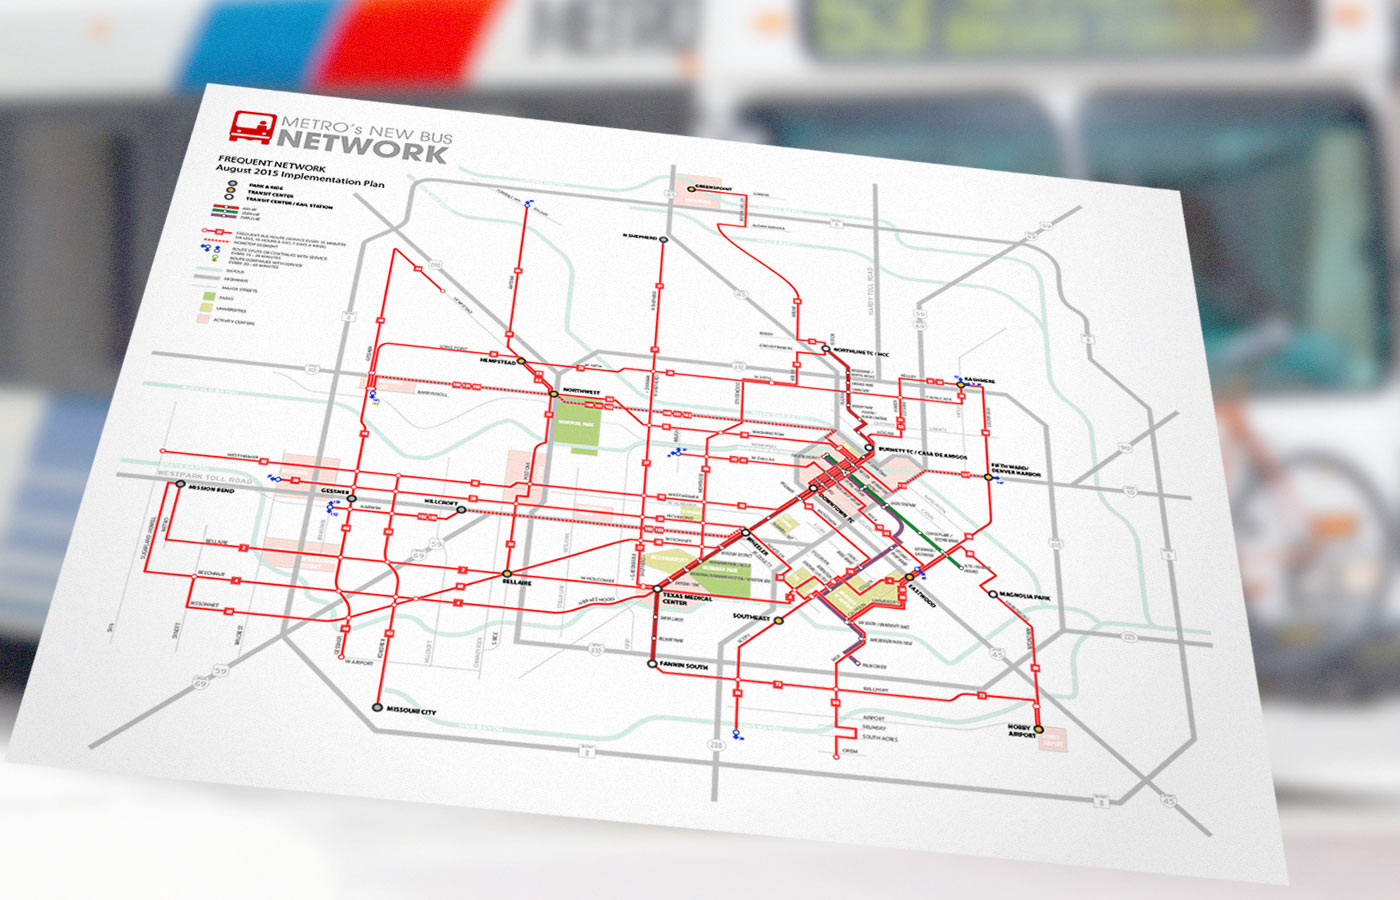 METROu0027s New Bus Network System Map TEI